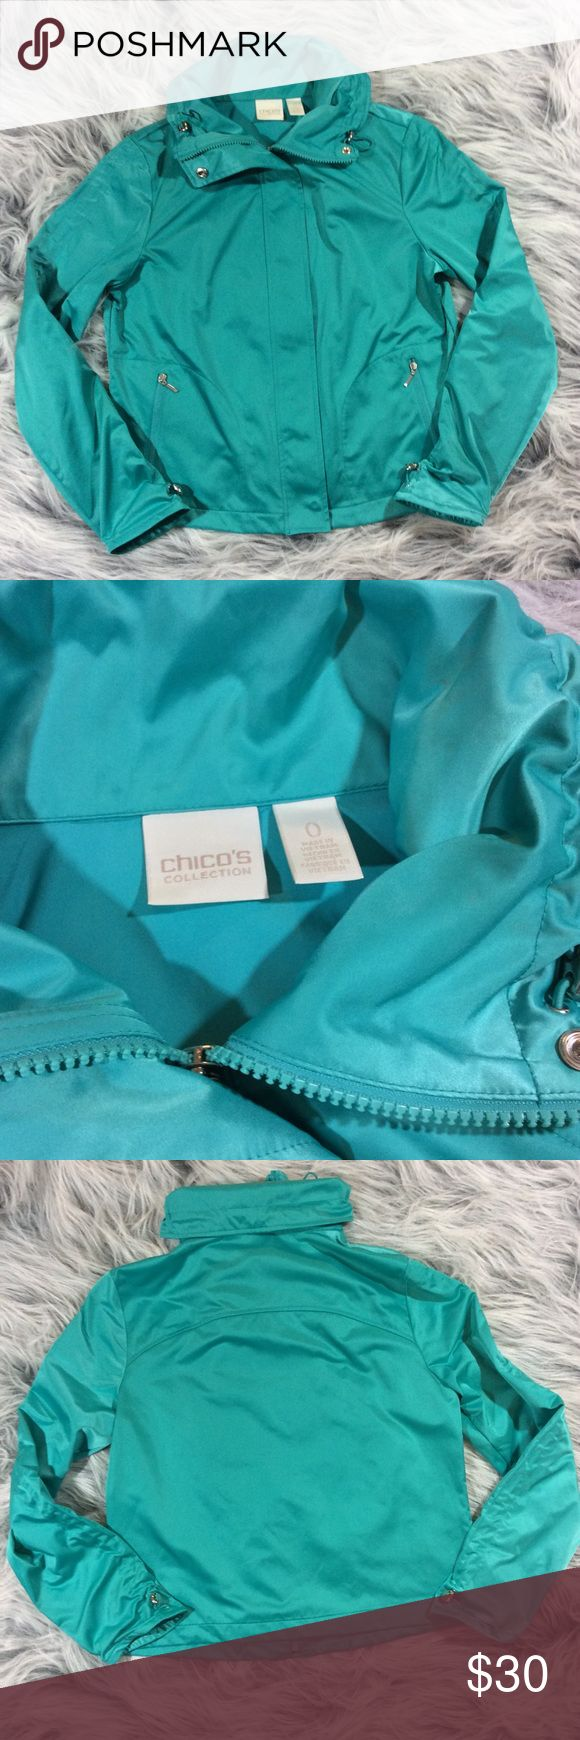 """Chico's Size 0 Small Aqua Blue Green Zip Up Jacket Chico's Women's Zip Up Jacket. Chico's size 0 = size 4/small. Please see measurements. In excellent preowned condition. Measurements are approximately bust 19"""" = 38"""" length 20.5"""" sleeves adjusted to shortest 18.5"""" at normal length 23"""". Chico's Jackets & Coats"""